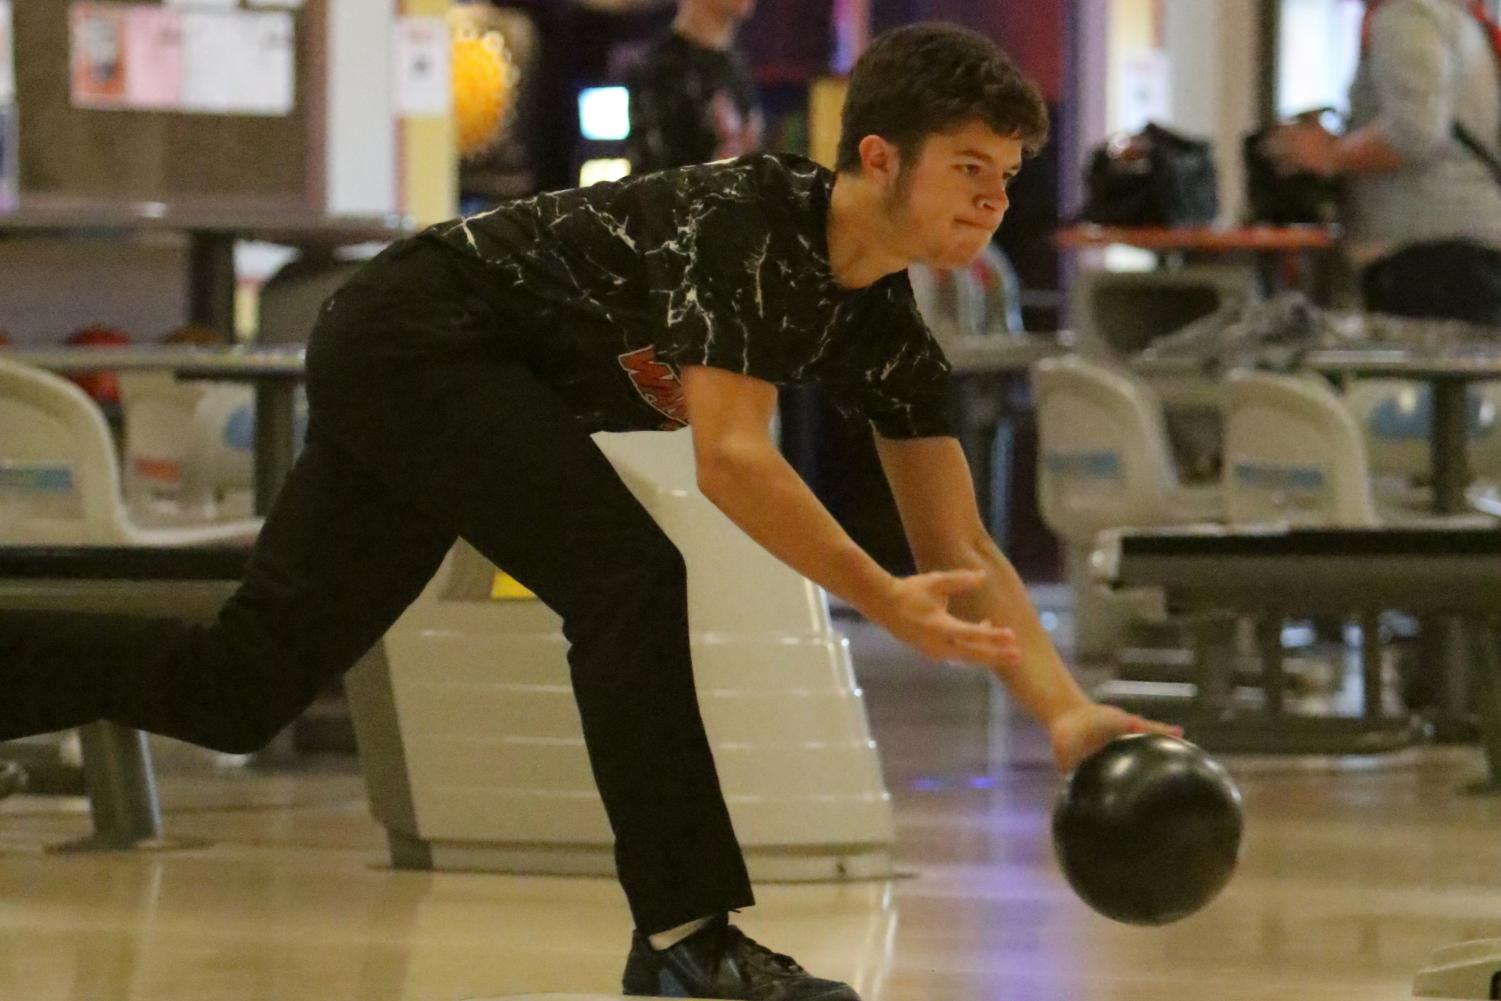 Senior Jacob McLean practices with the boys bowling team in December of 2018 at Raymond's Bowl in Johnsburg, IL. McLean committed to bowl with Highland College,  won the NJCAA tournament last year.